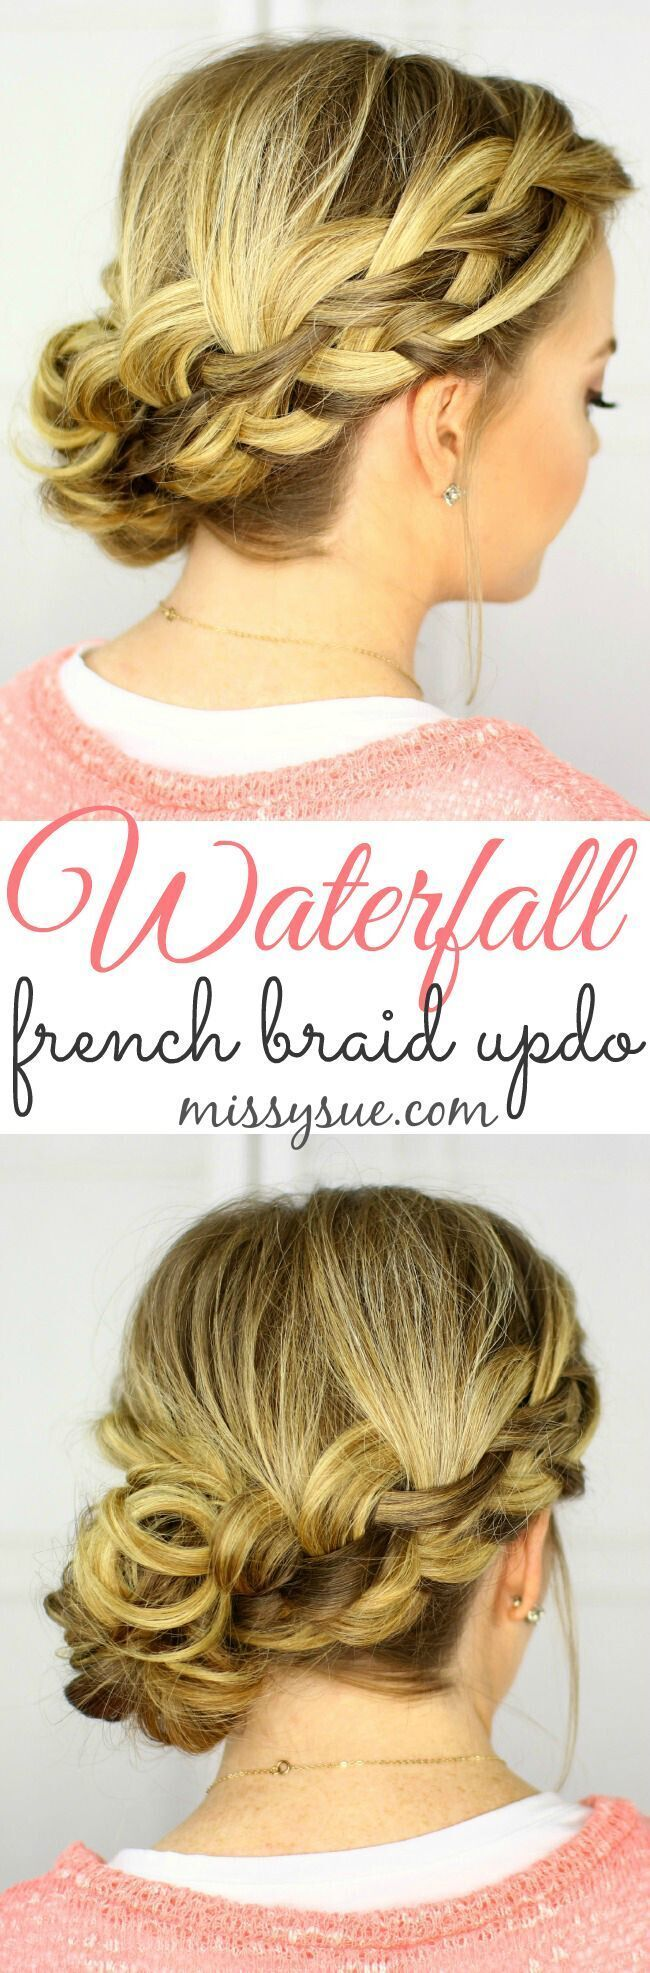 Low side updo hairstyles waterfall french braid updo wonderful